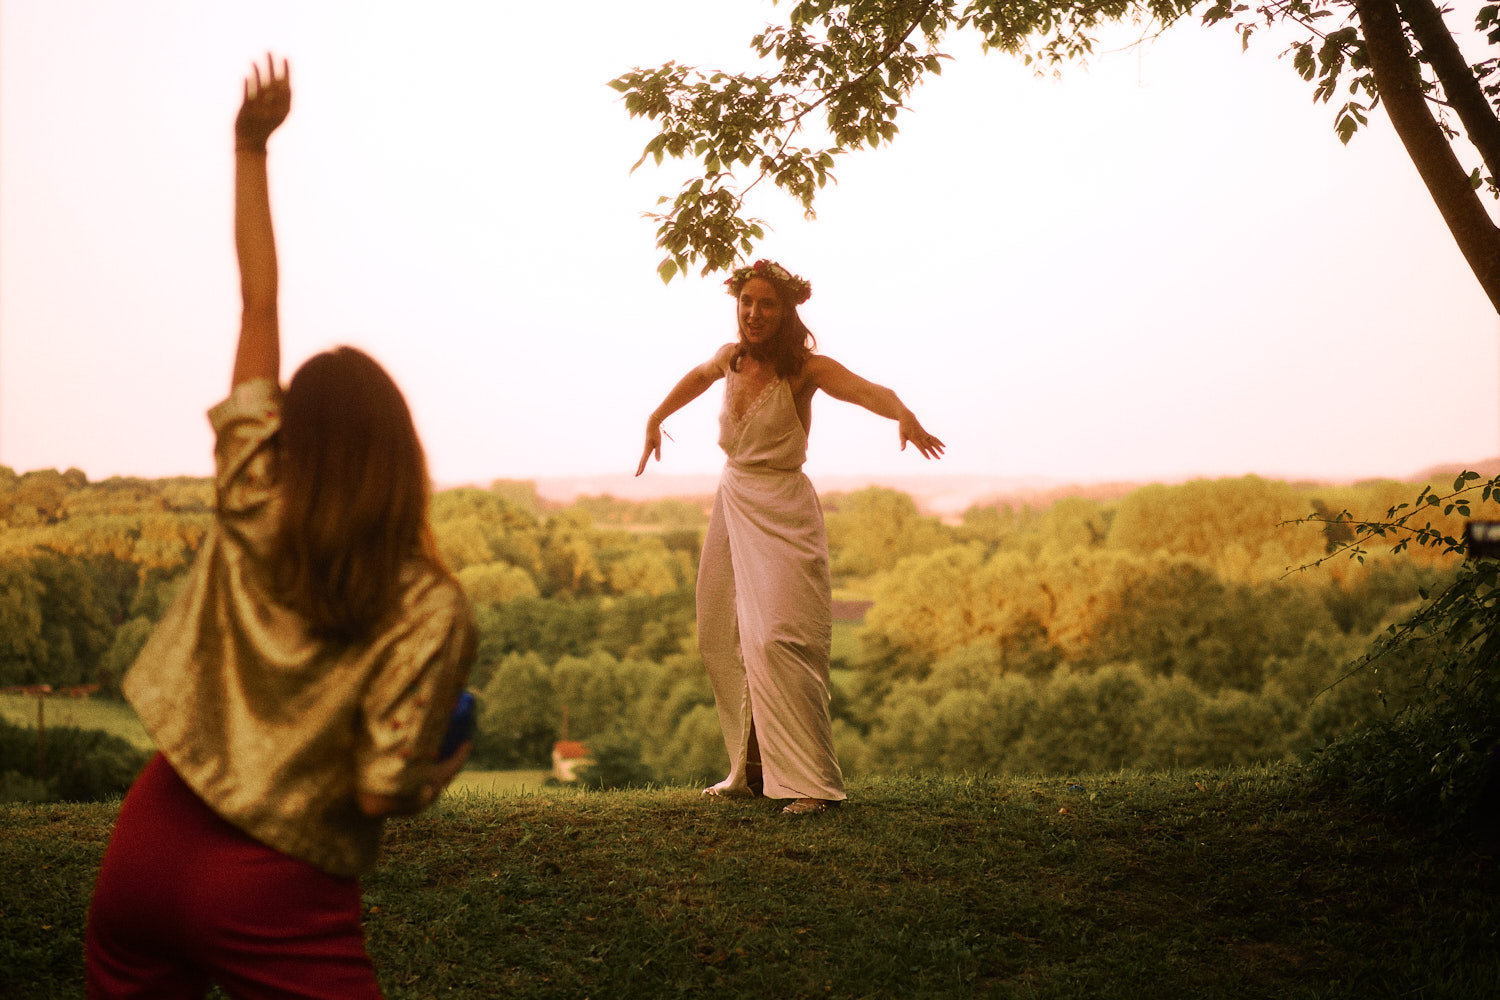 A bride and friend dancing in a garden